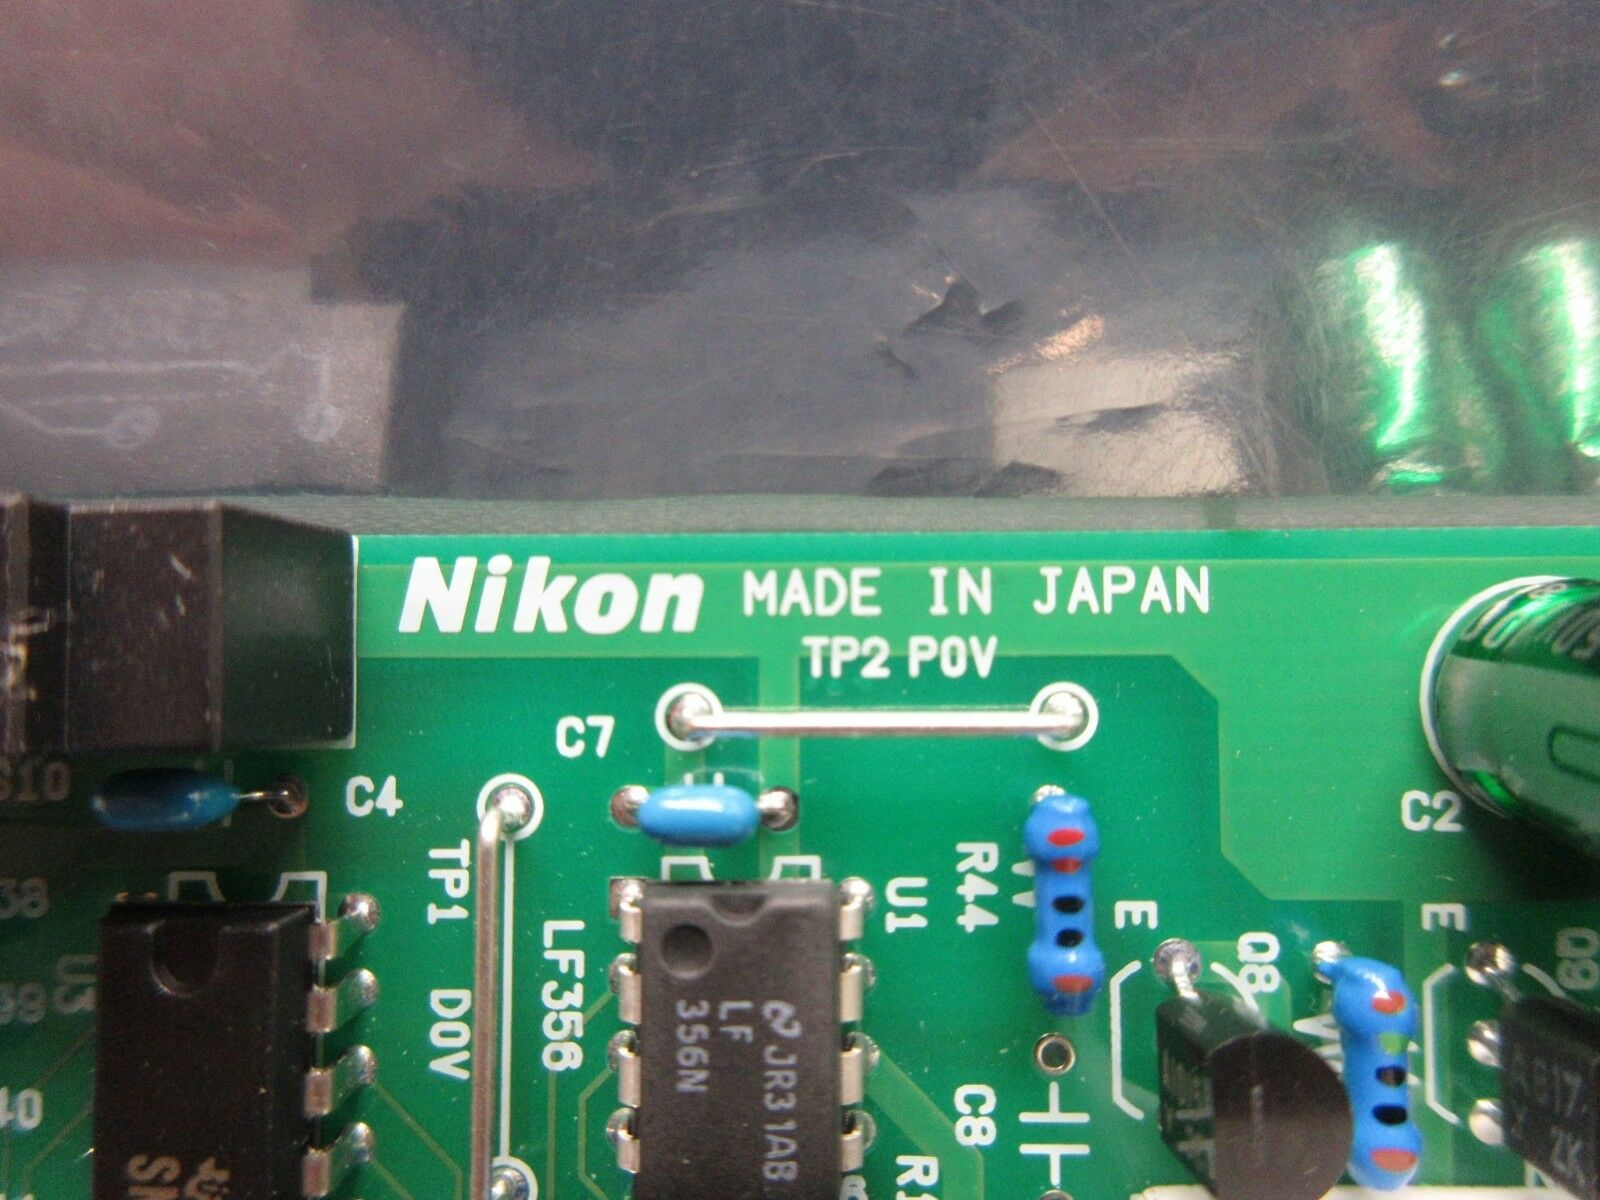 Nikon 4S003-028 Interface Control Board PCB DCMD-L2 NSR System Used Working